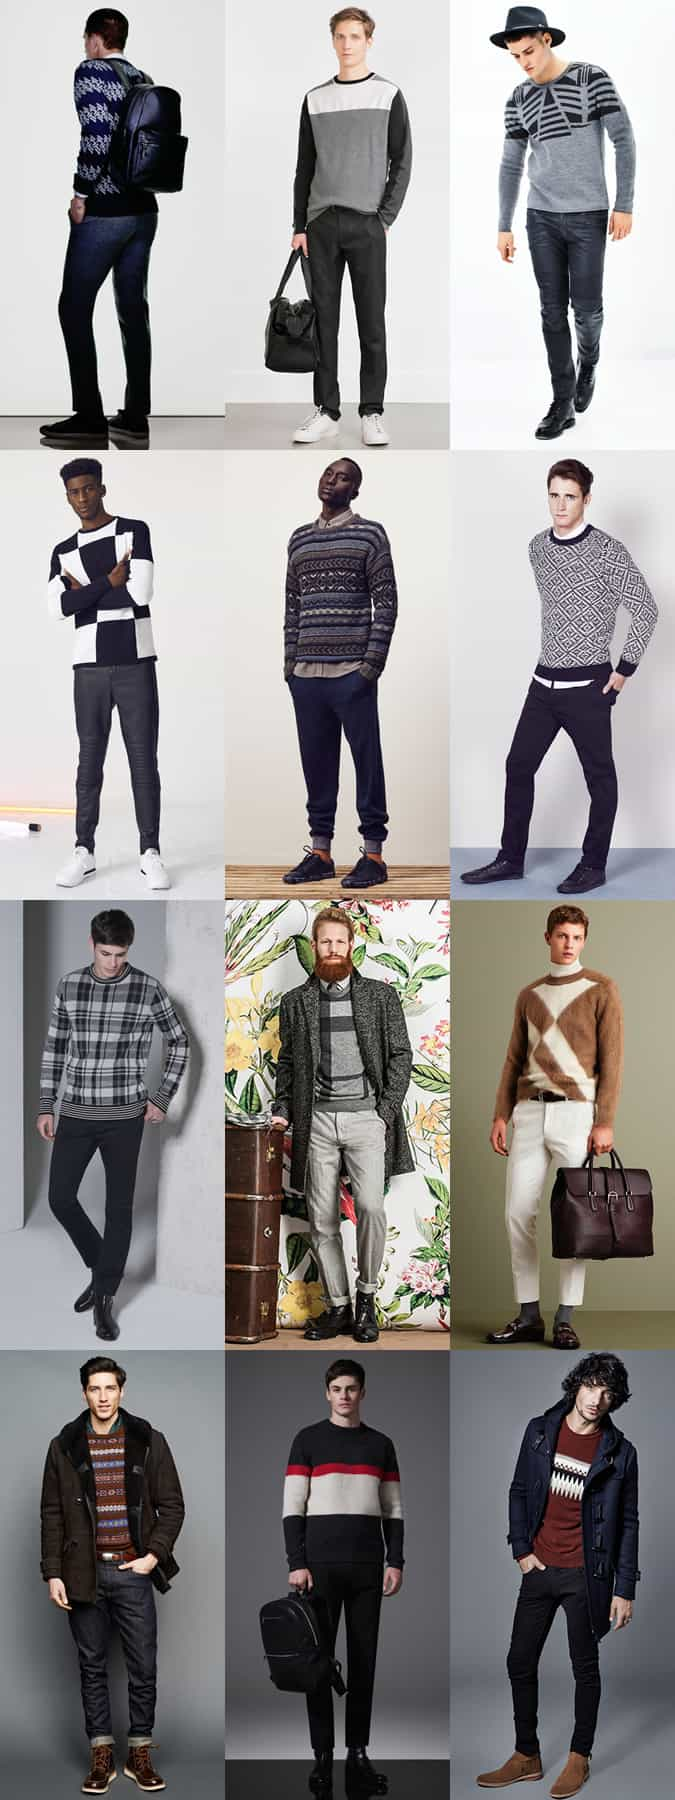 Men's Graphic/Printed Knitwear Outfit Inspiration Lookbook